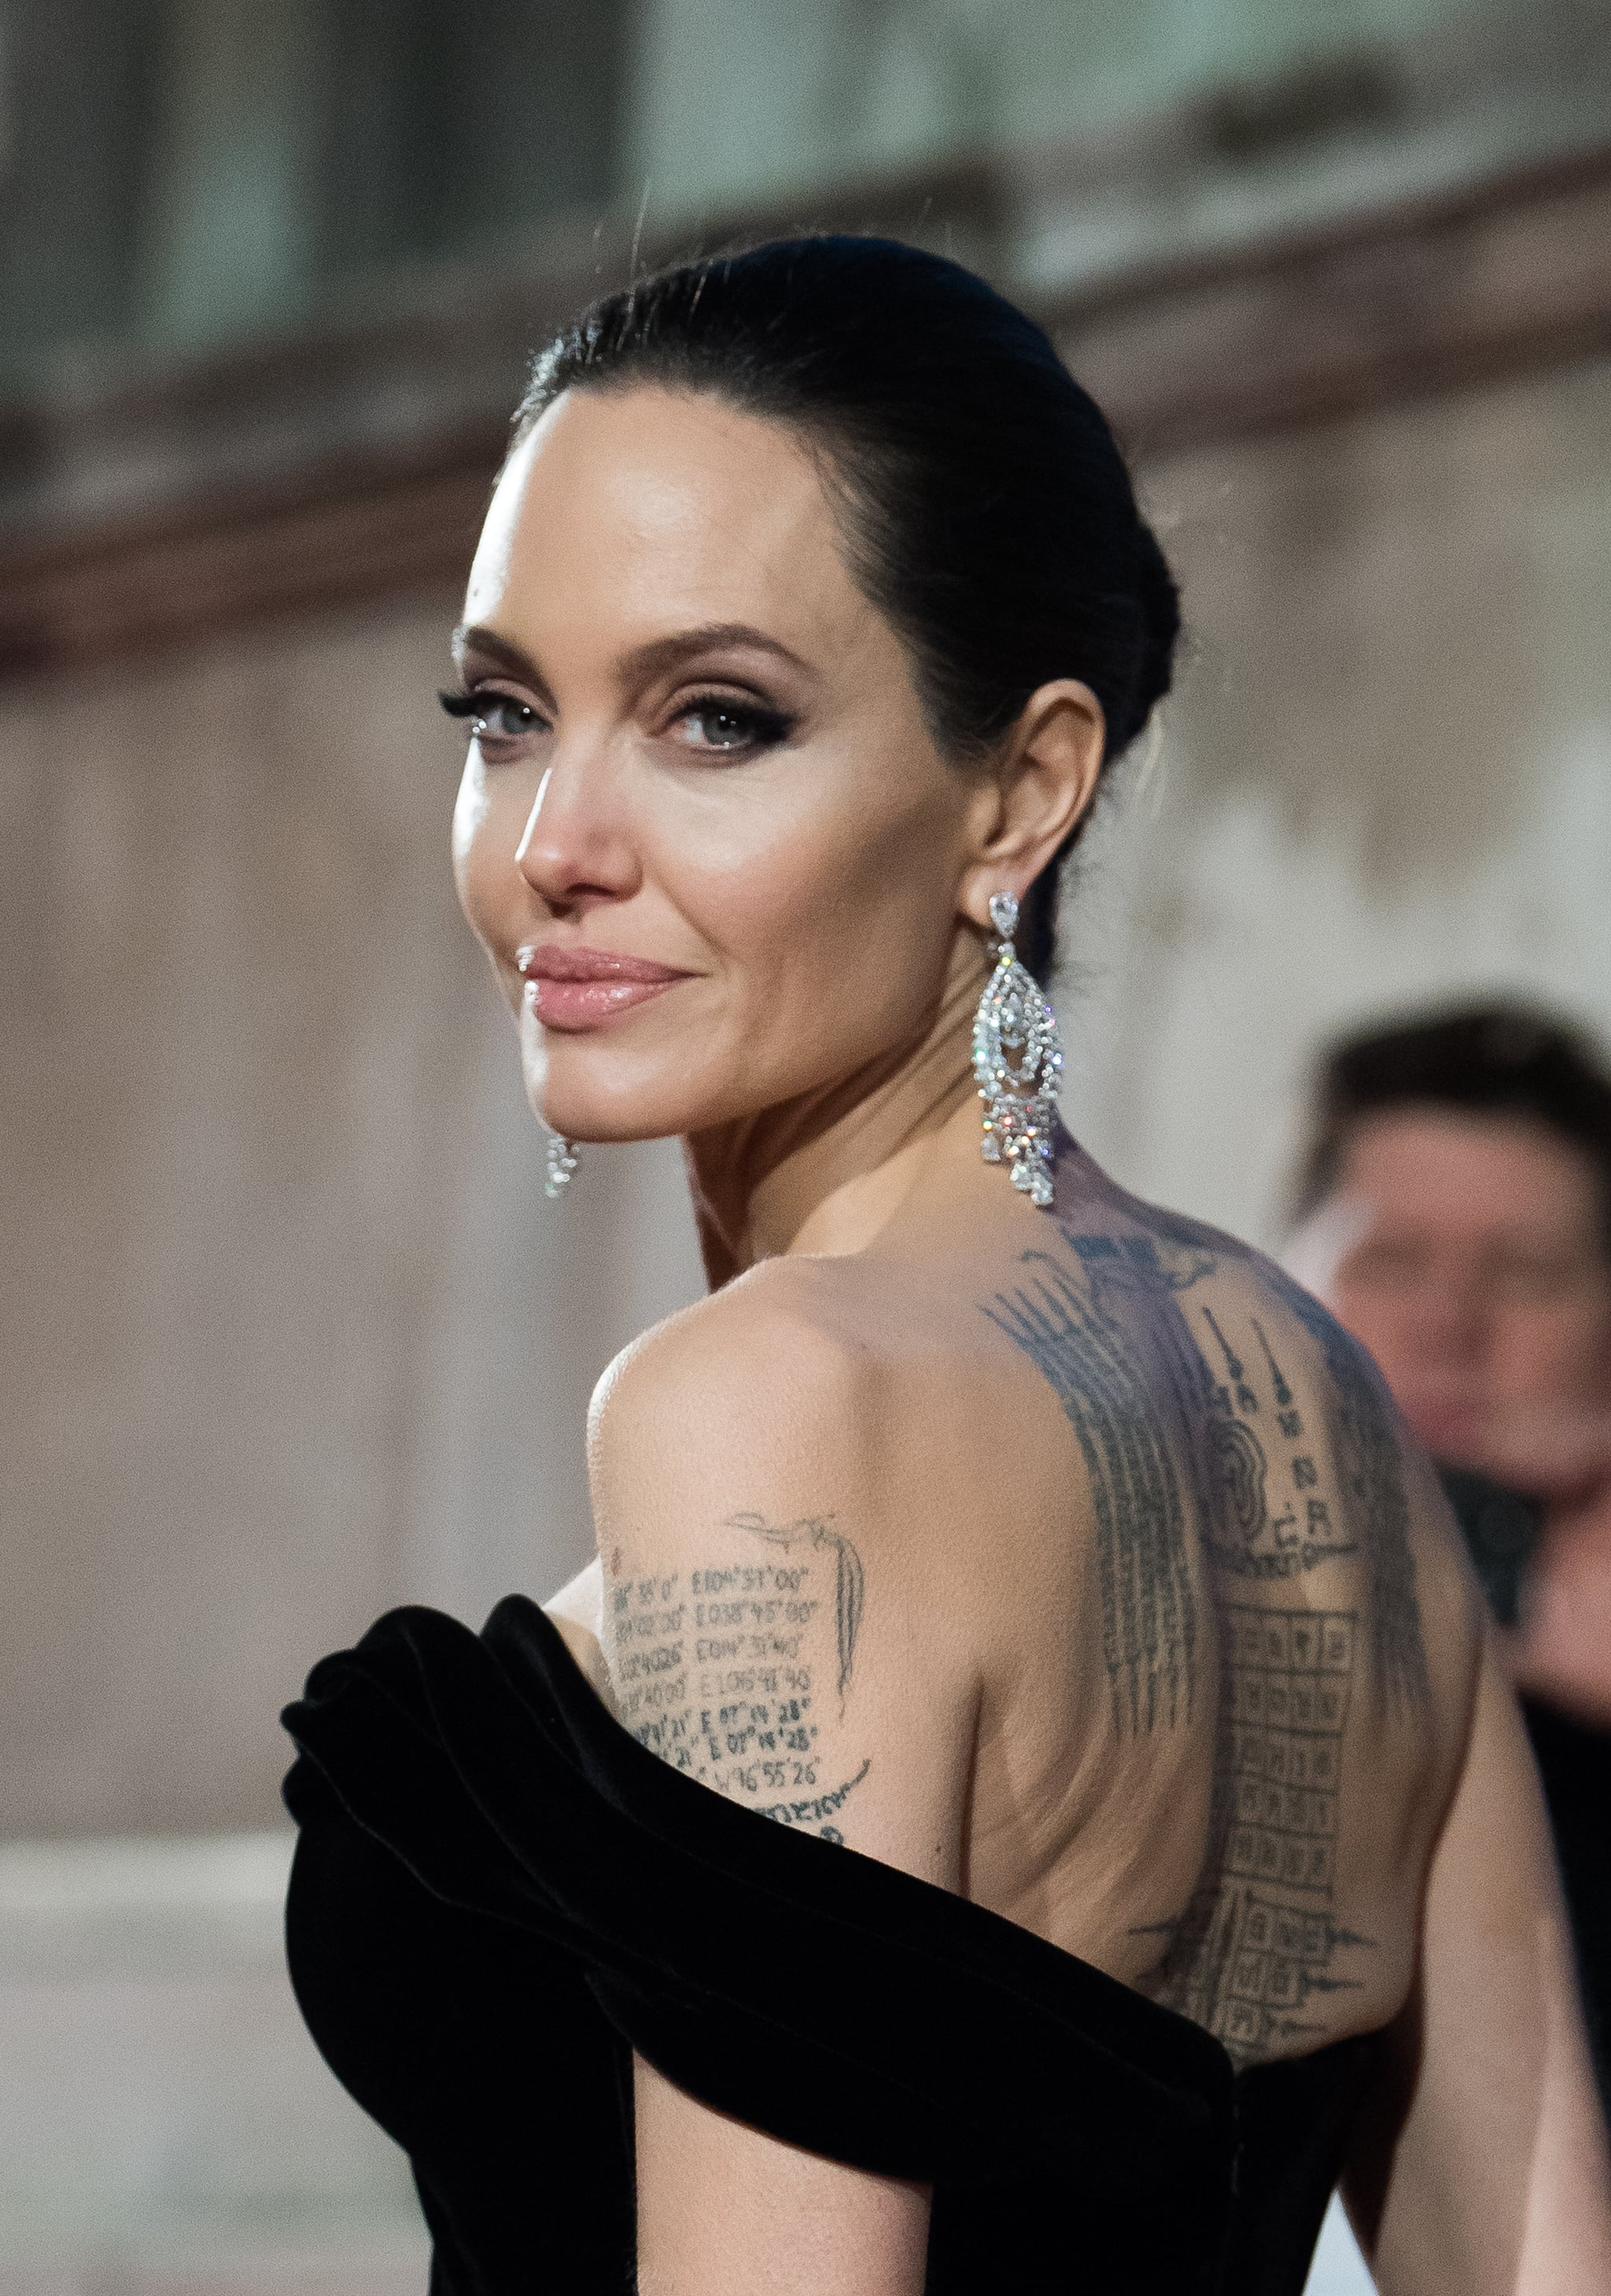 LONDON, ENGLAND - FEBRUARY 18:  Angelina Jolie  attends the EE British Academy Film Awards (BAFTAs) held at Royal Albert Hall on February 18, 2018 in London, England.  (Photo by Samir Hussein/WireImage)